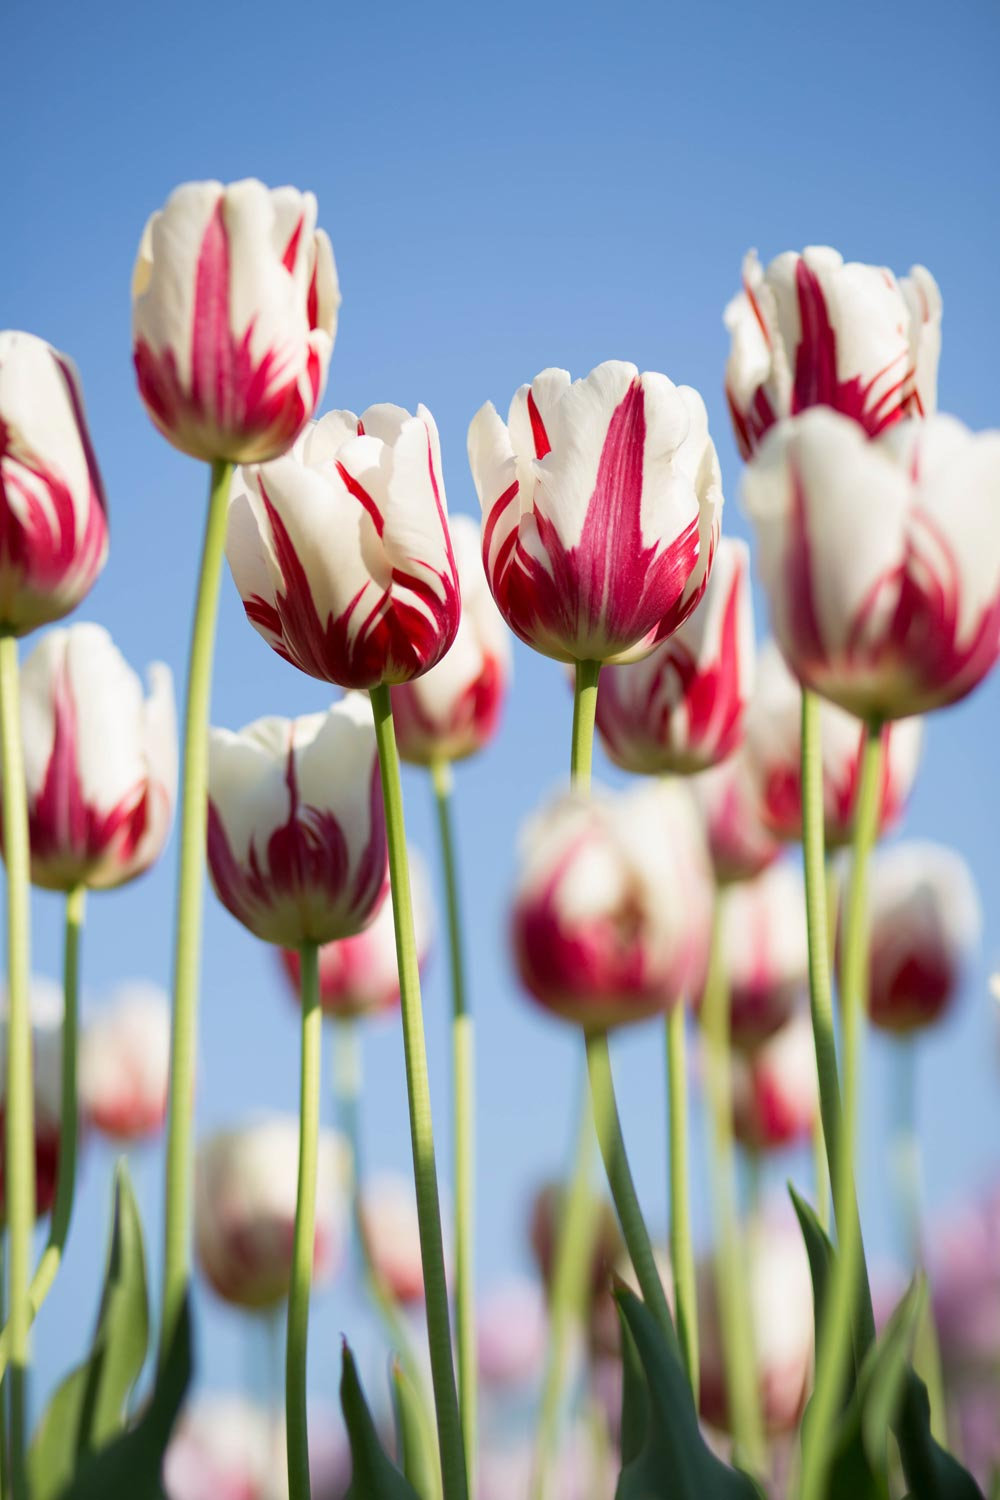 Red and white Tulips